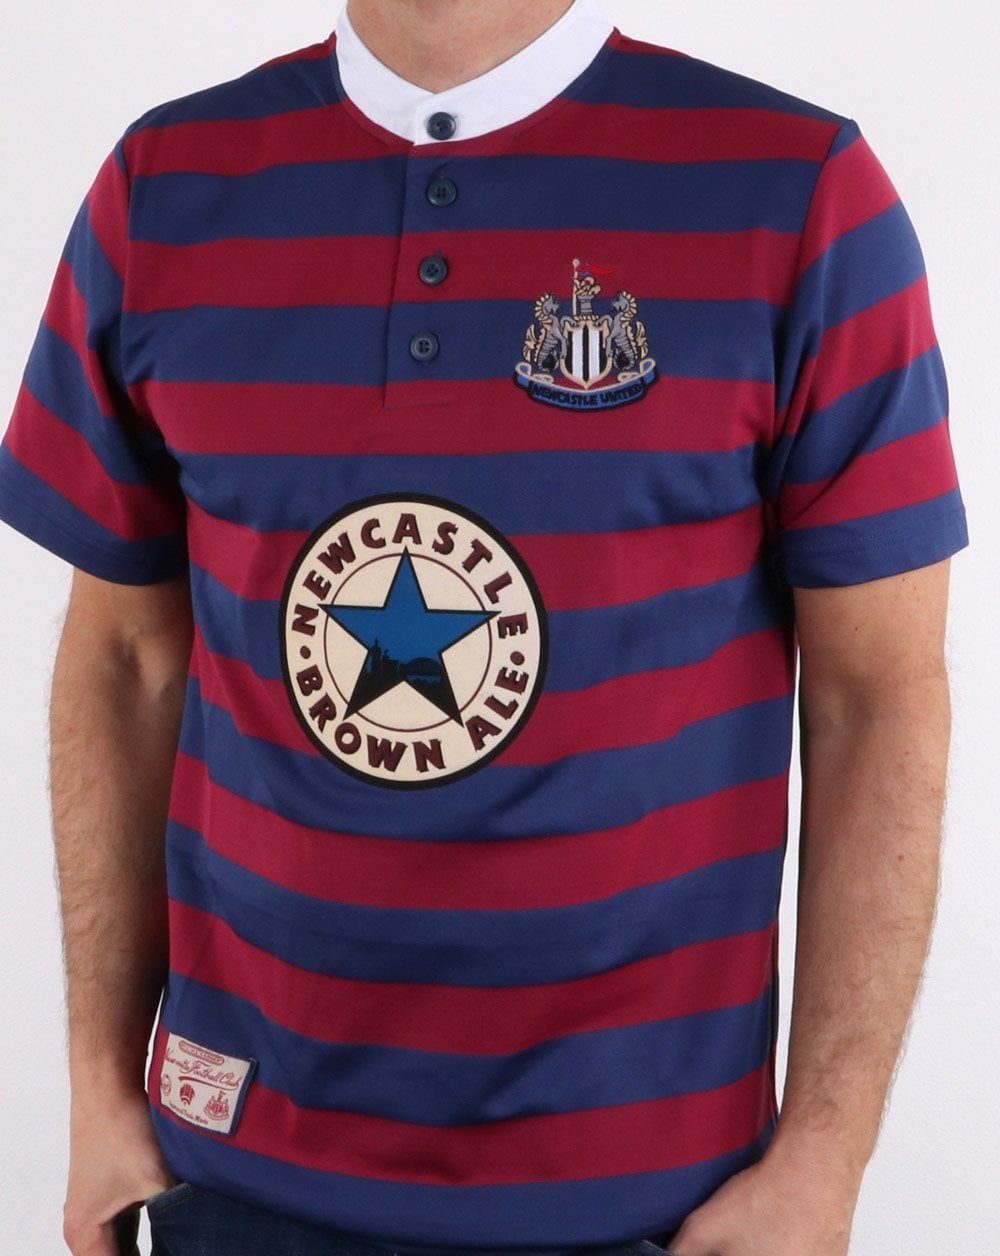 Retro Football Shirt Newcastle 1996